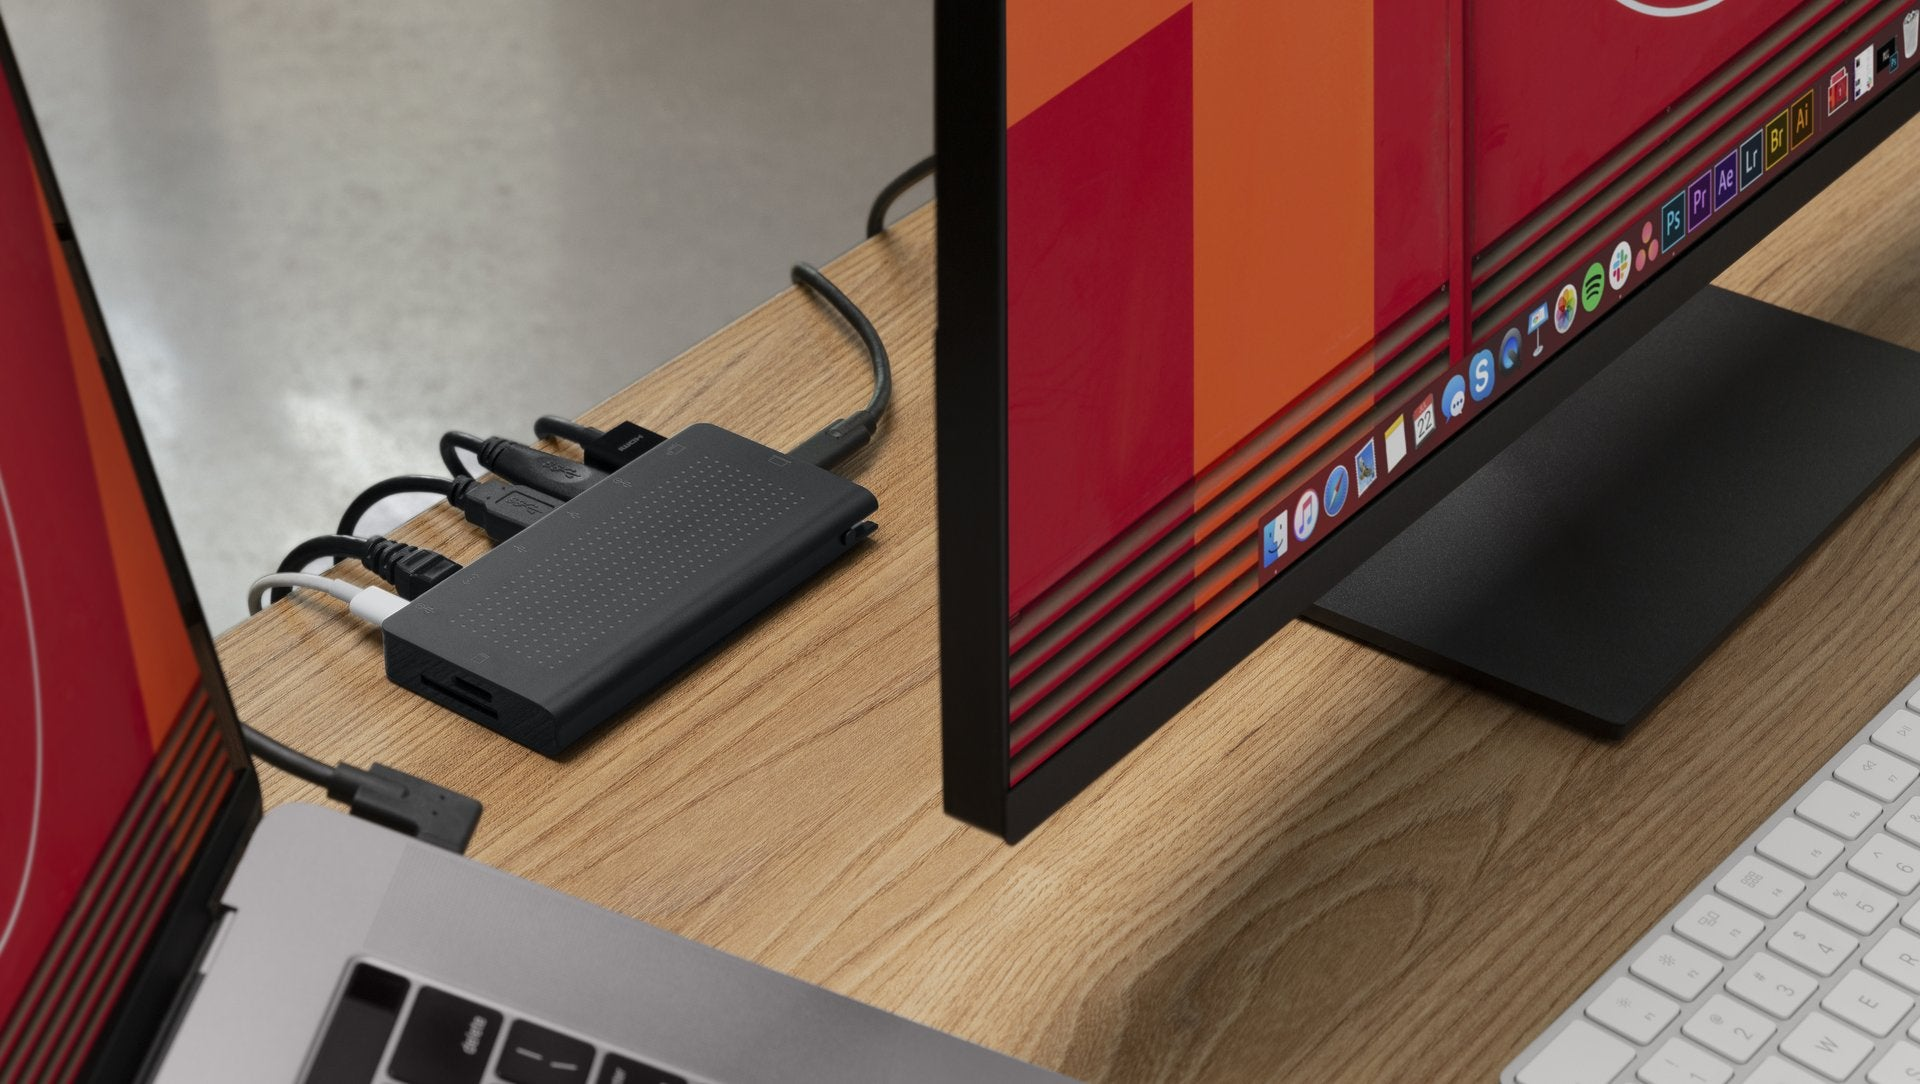 Twelve South StayGo - The Ingenious USB-C Hub Your MacBook Deserves